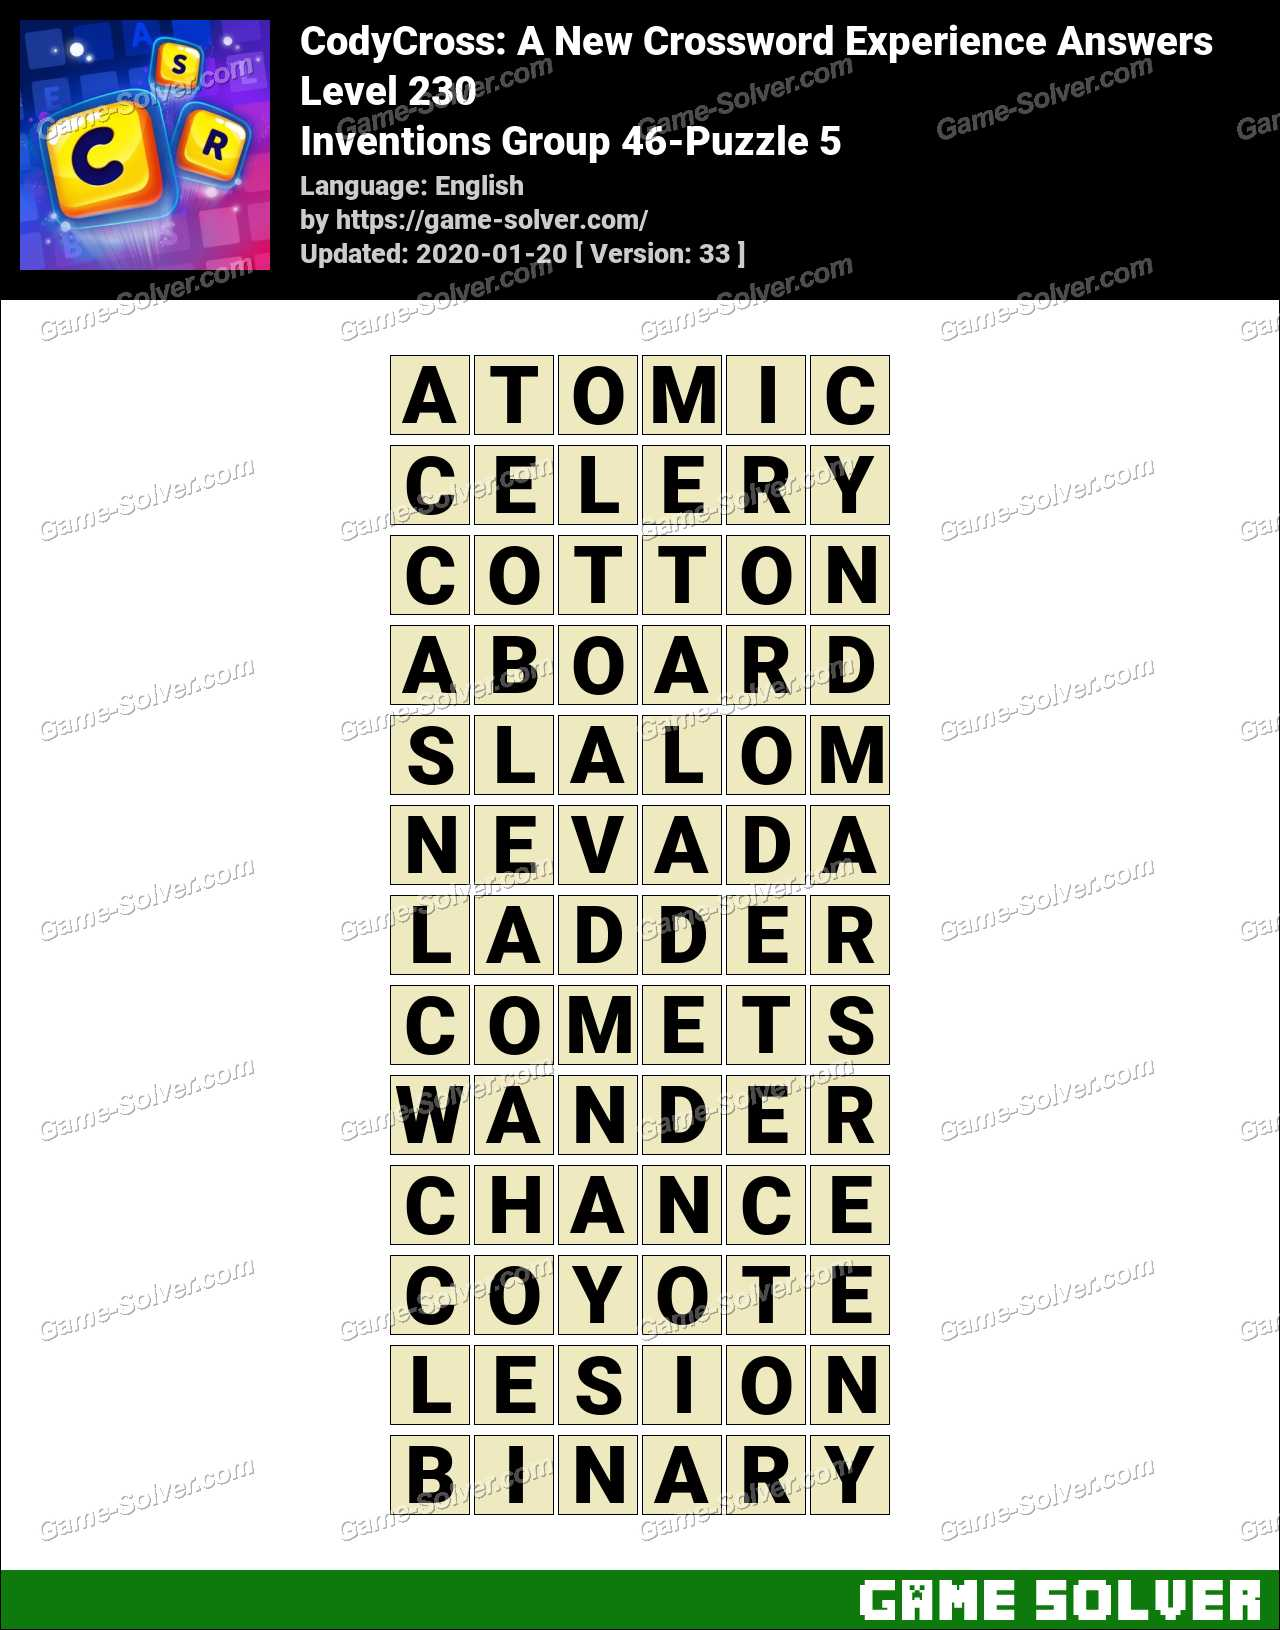 CodyCross Inventions Group 46-Puzzle 5 Answers